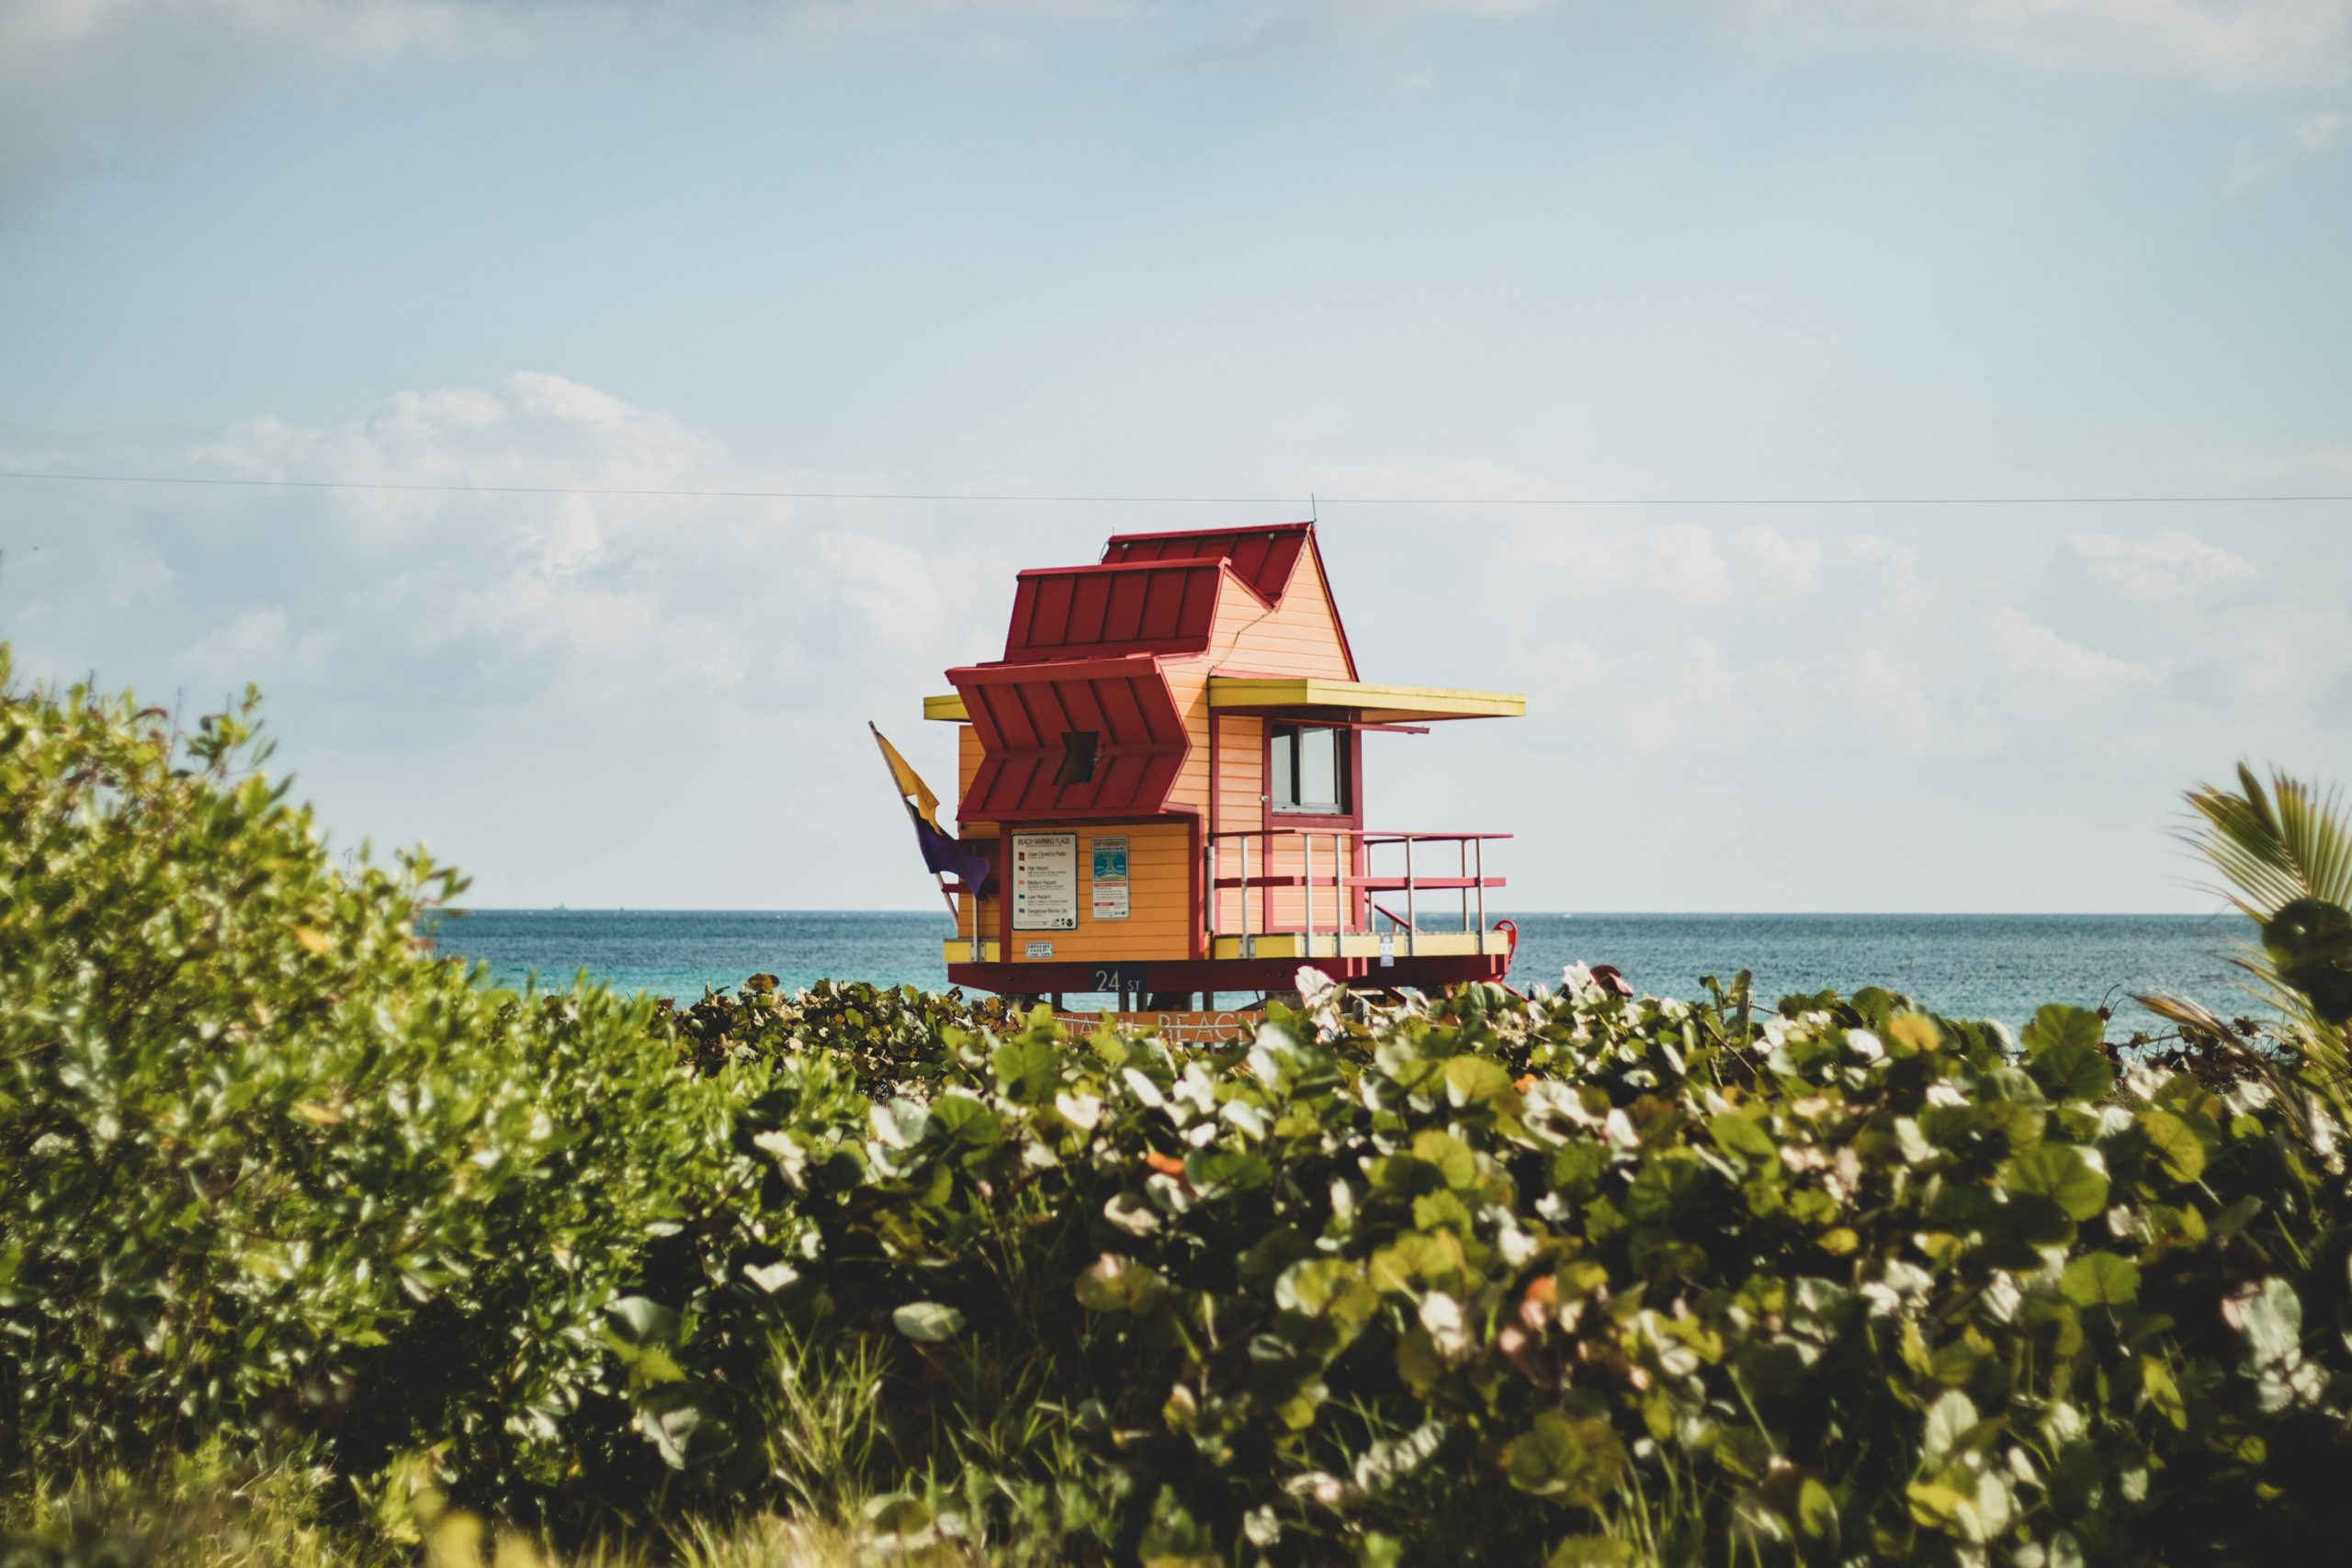 Hidden gems in Miami include this secluded beach and lifeguard stand.